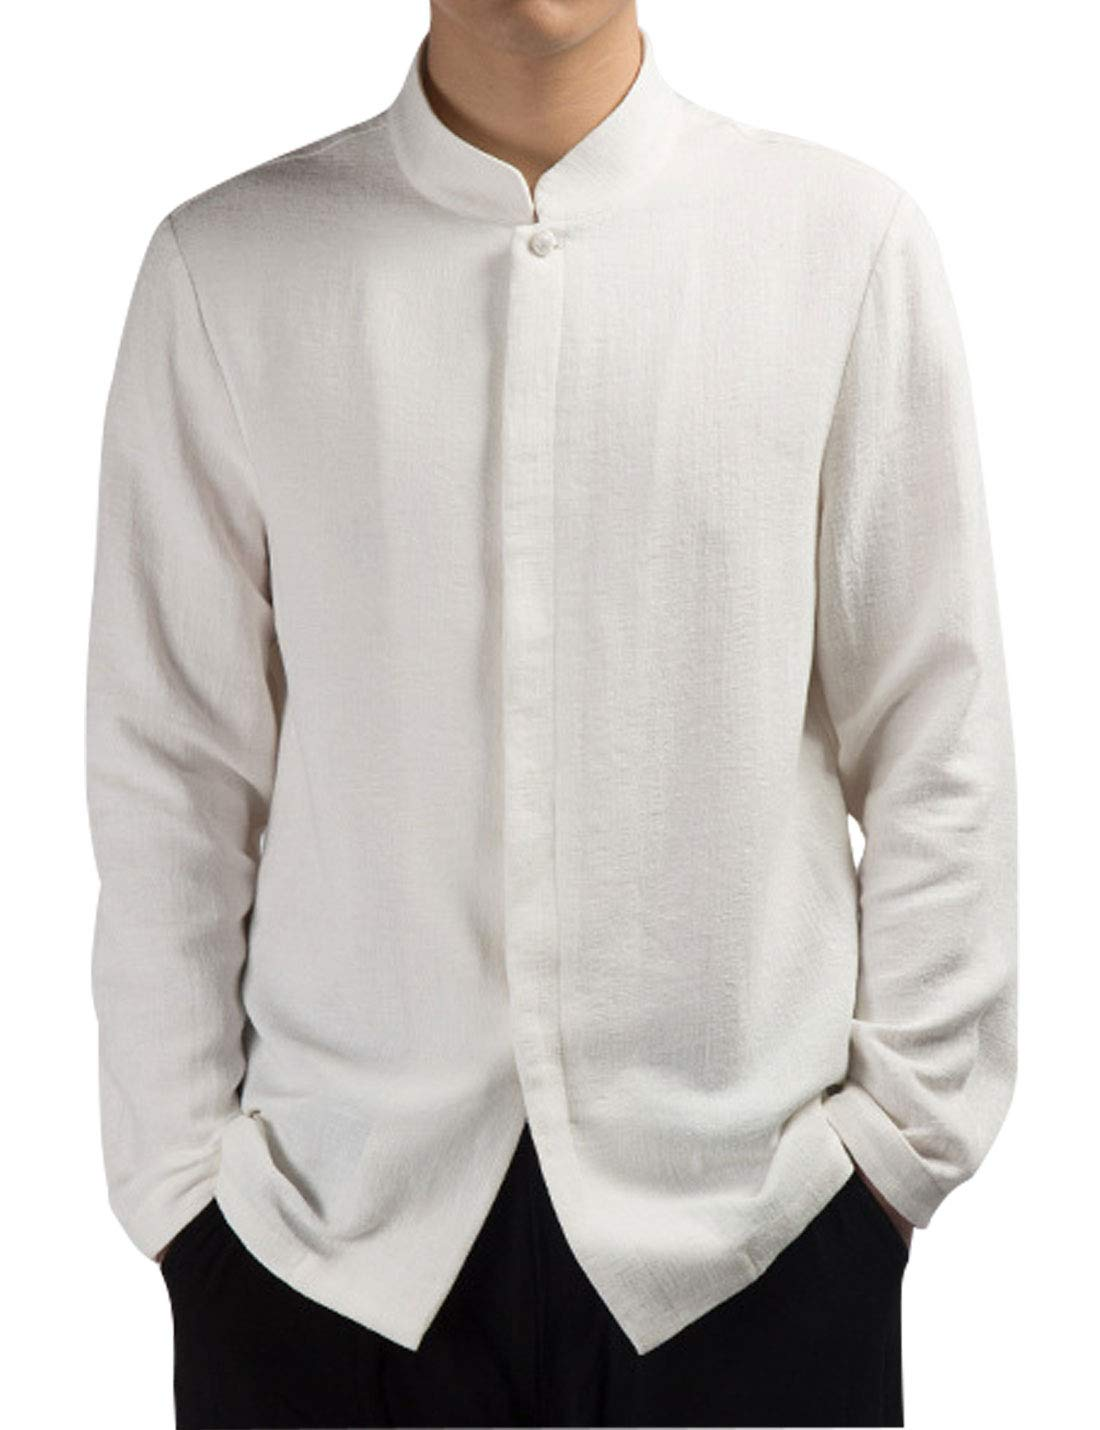 Omoone Mens Long Sleeve Chinese Traditional Tai Chi Tang Suit Cotton Linen Shirt(White-L)